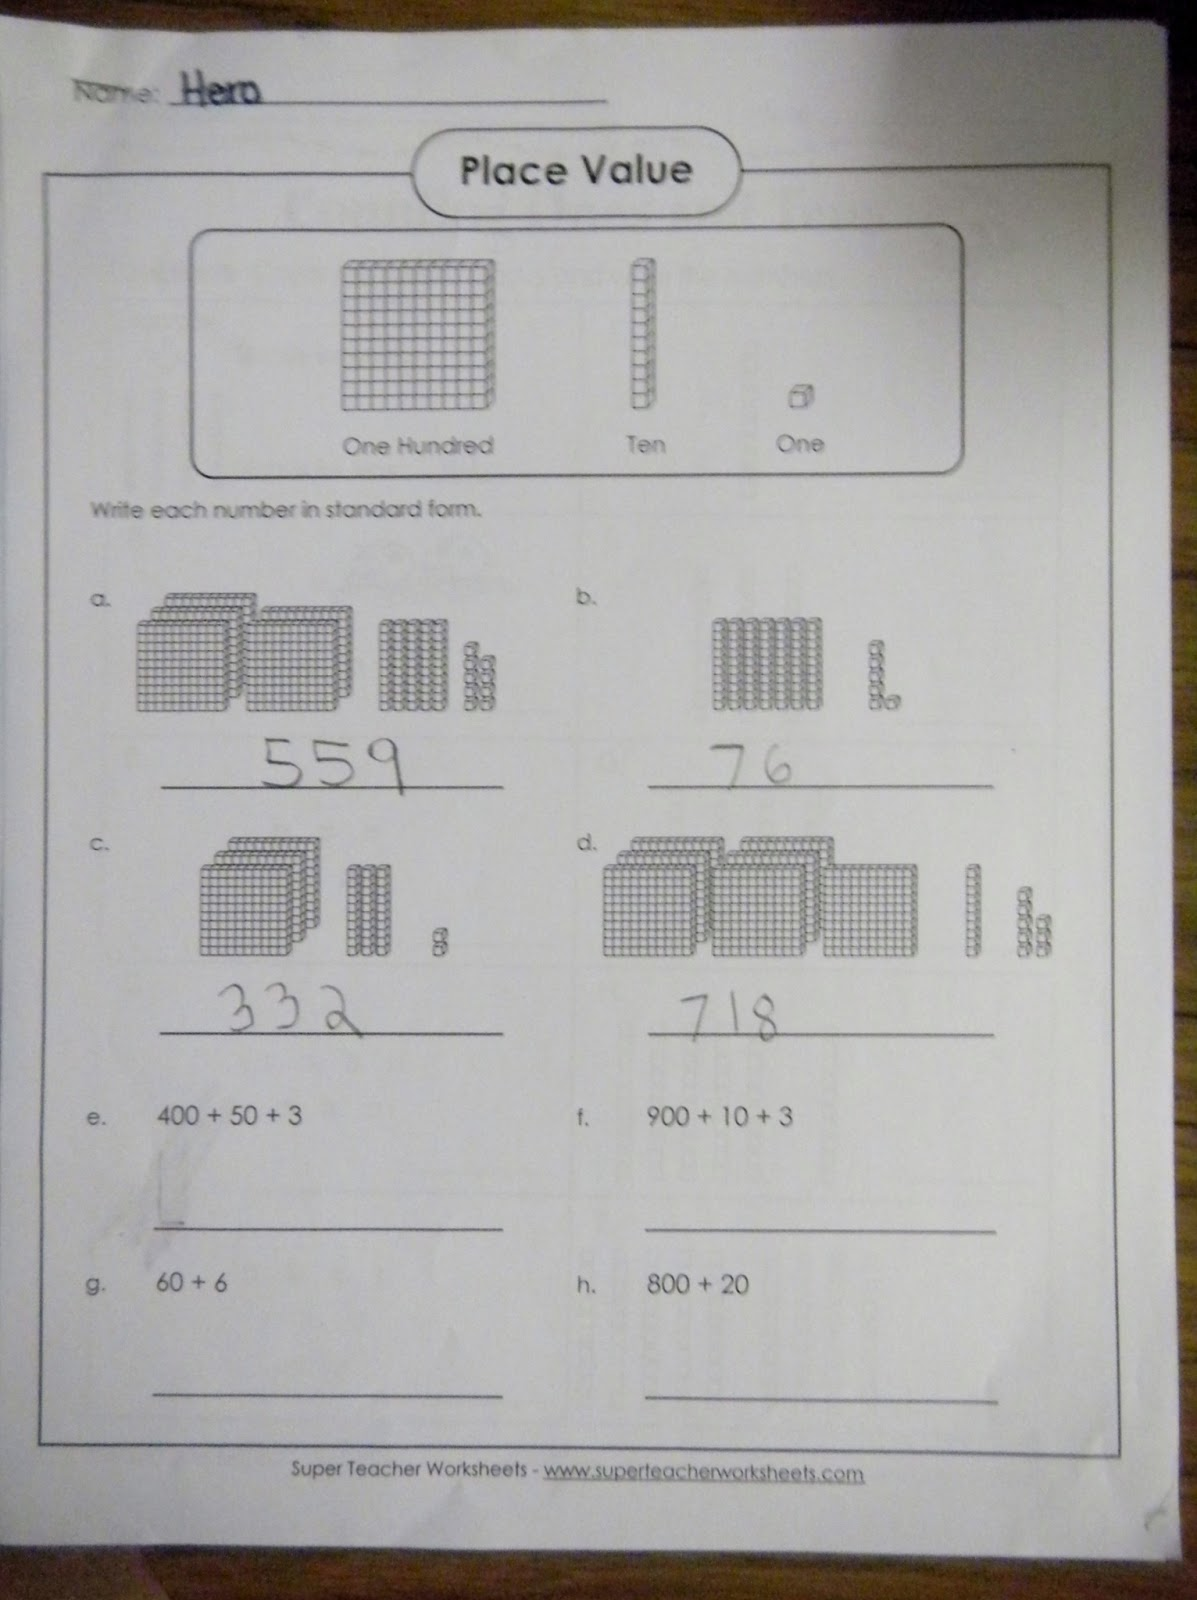 BUILD Place Value – Super Teacher Worksheets Place Value